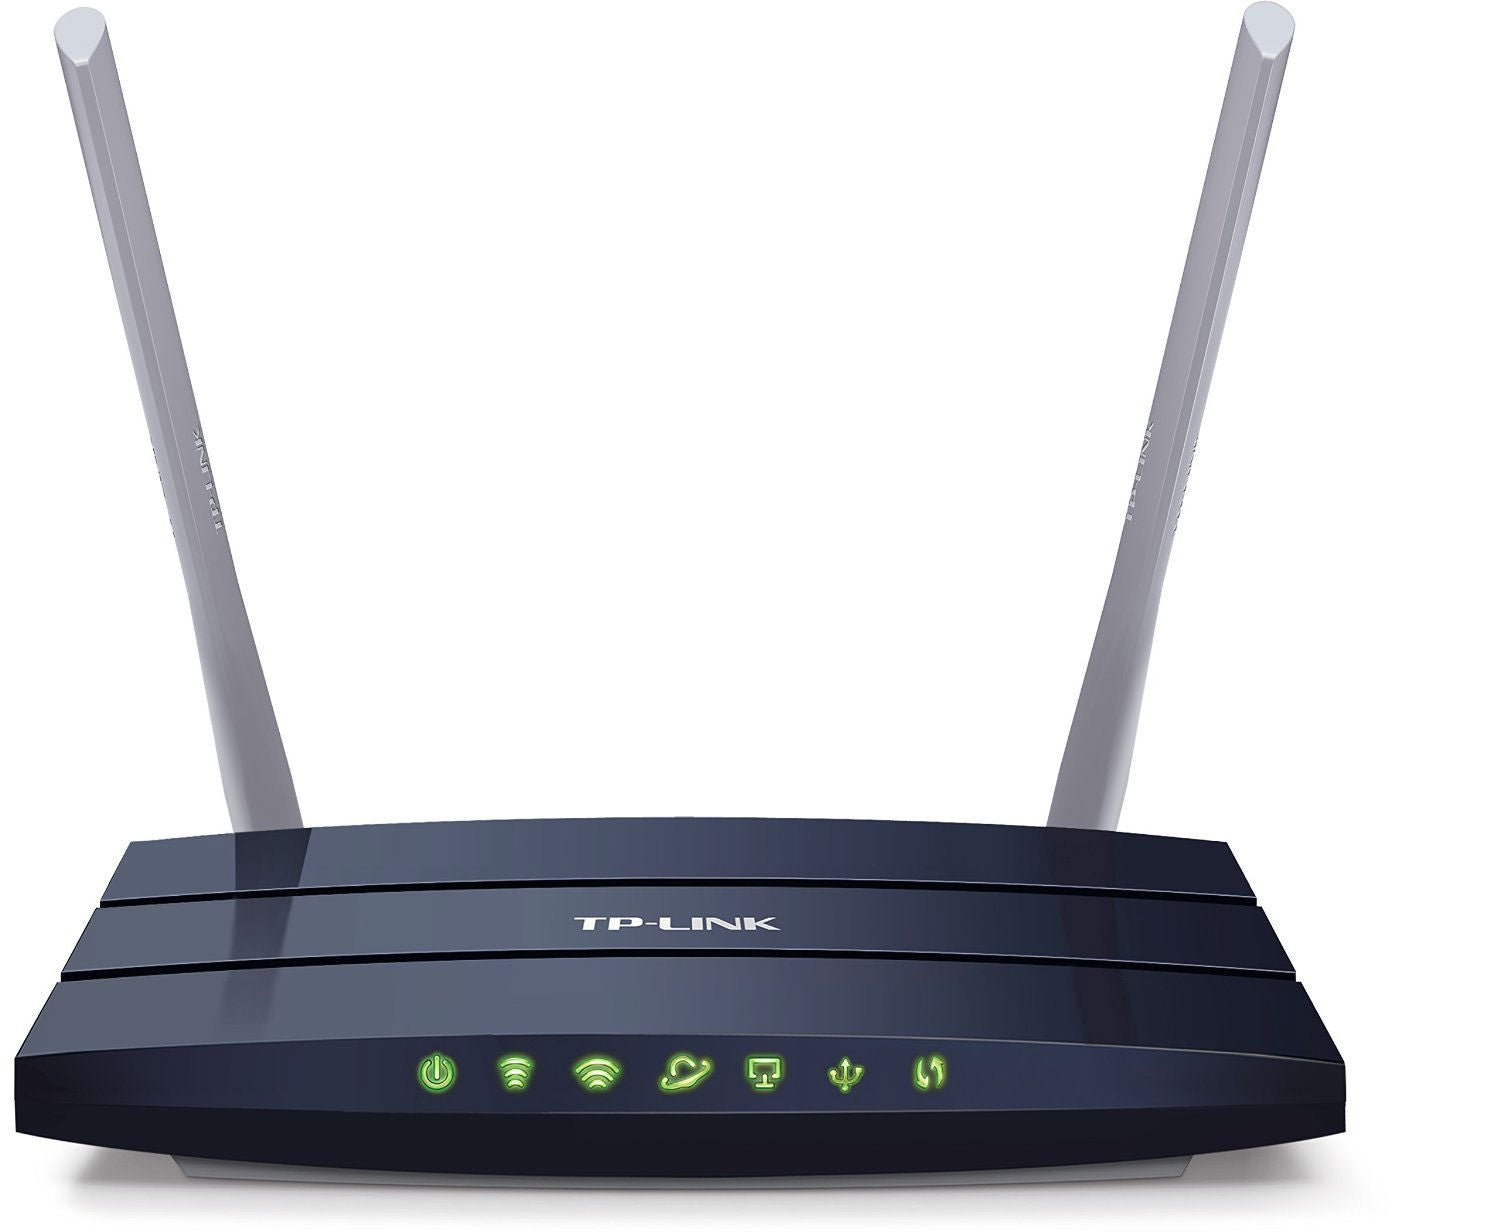 Top: Wi-Fi Routers for Fiber Optics - Upgrade your 2017 FTTH network